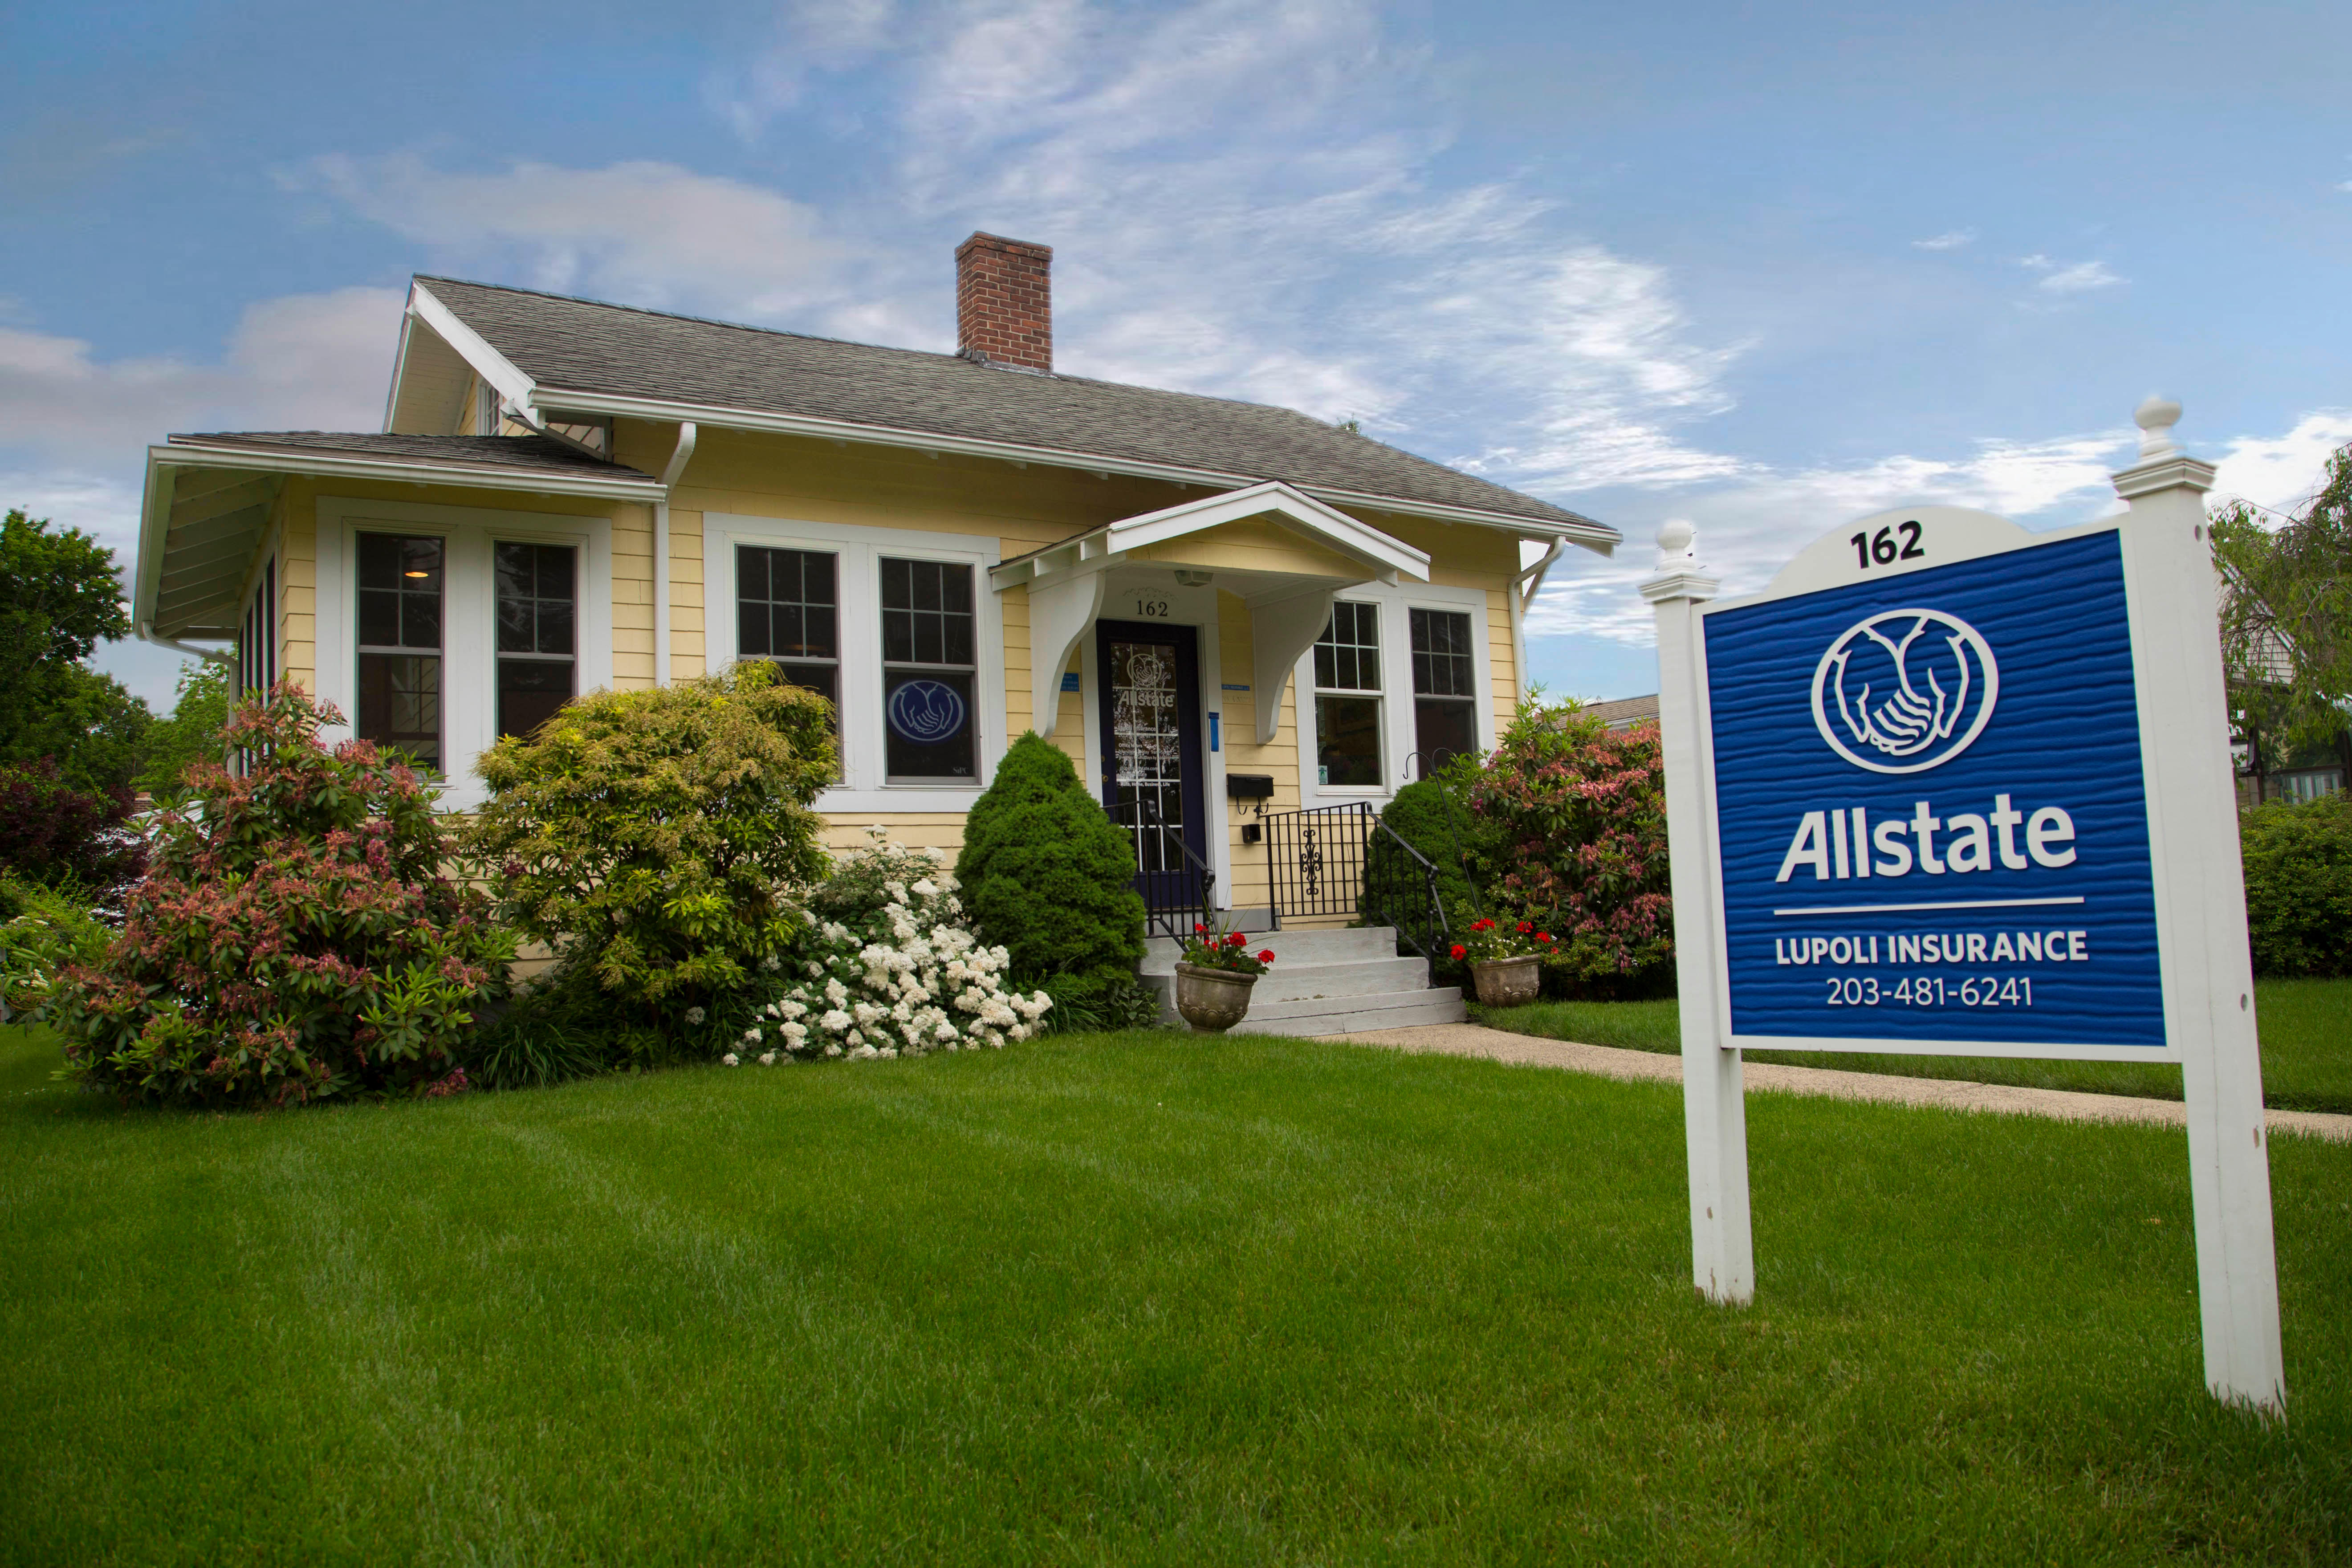 Insurance Agency in CT Branford 06405 Allstate Insurance Agent: Stephanie Lupoli 162 Montowese St  (203)481-6241